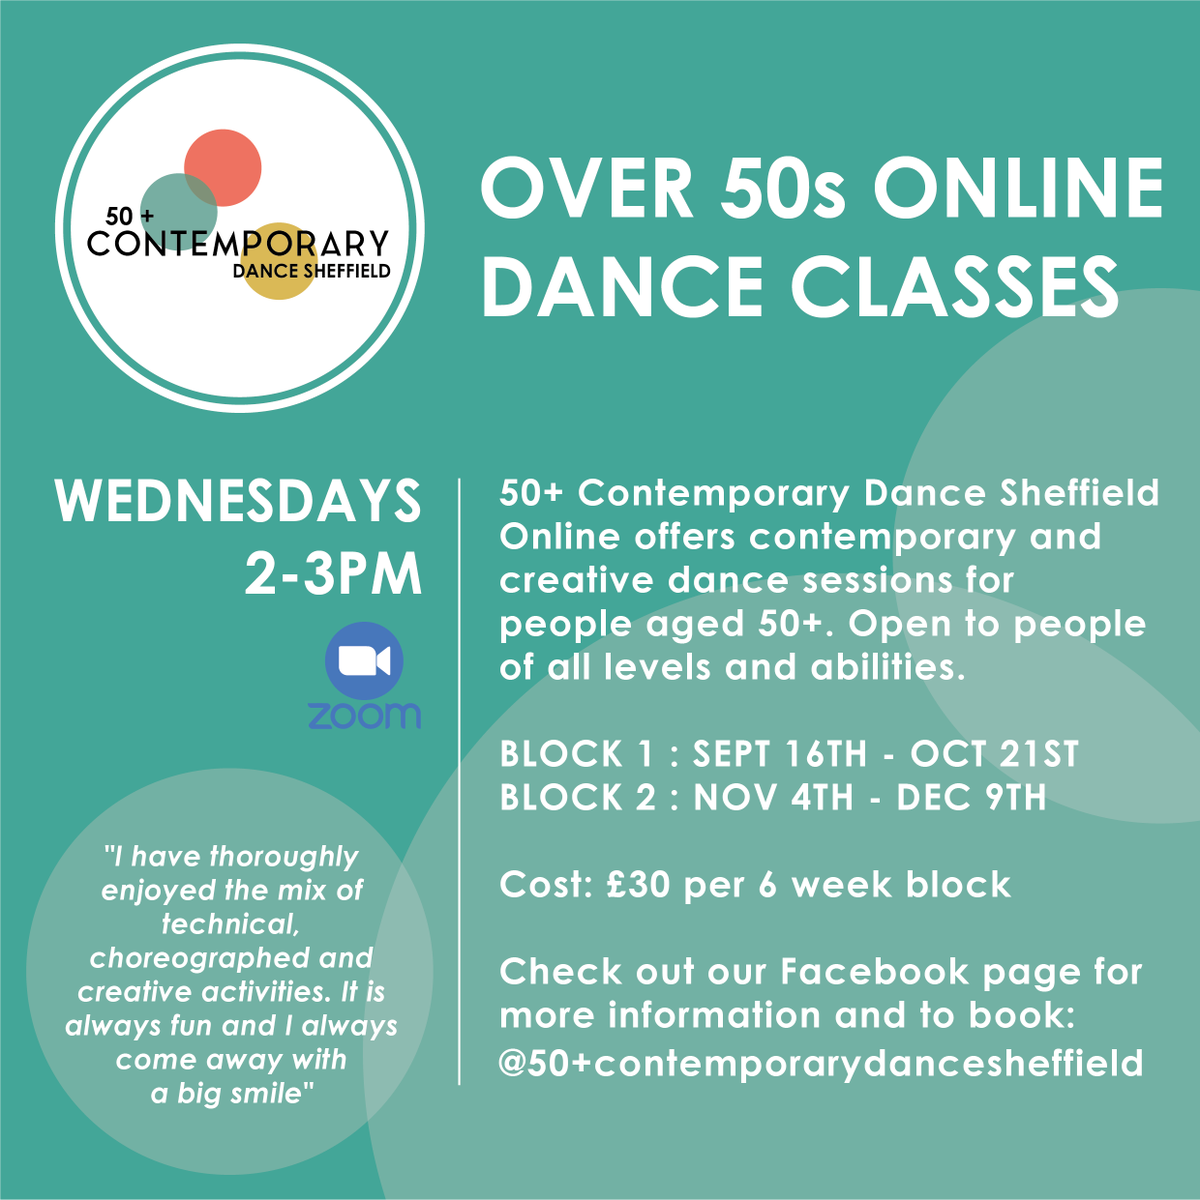 ** AUTUMN TERM ZOOM DANCE CLASSES!!! ** 💛 🌳 🍁 🍂  To pay & book for Block 1 get in contact by THURSDAY 3RD SEPTEMBER  Either message or email lucyhaighton@gmail.com  #Dance #50cds #over50s #communitydance #activeageing #Creative #JOY #dancingforjoy https://t.co/Xgn43aYKfO